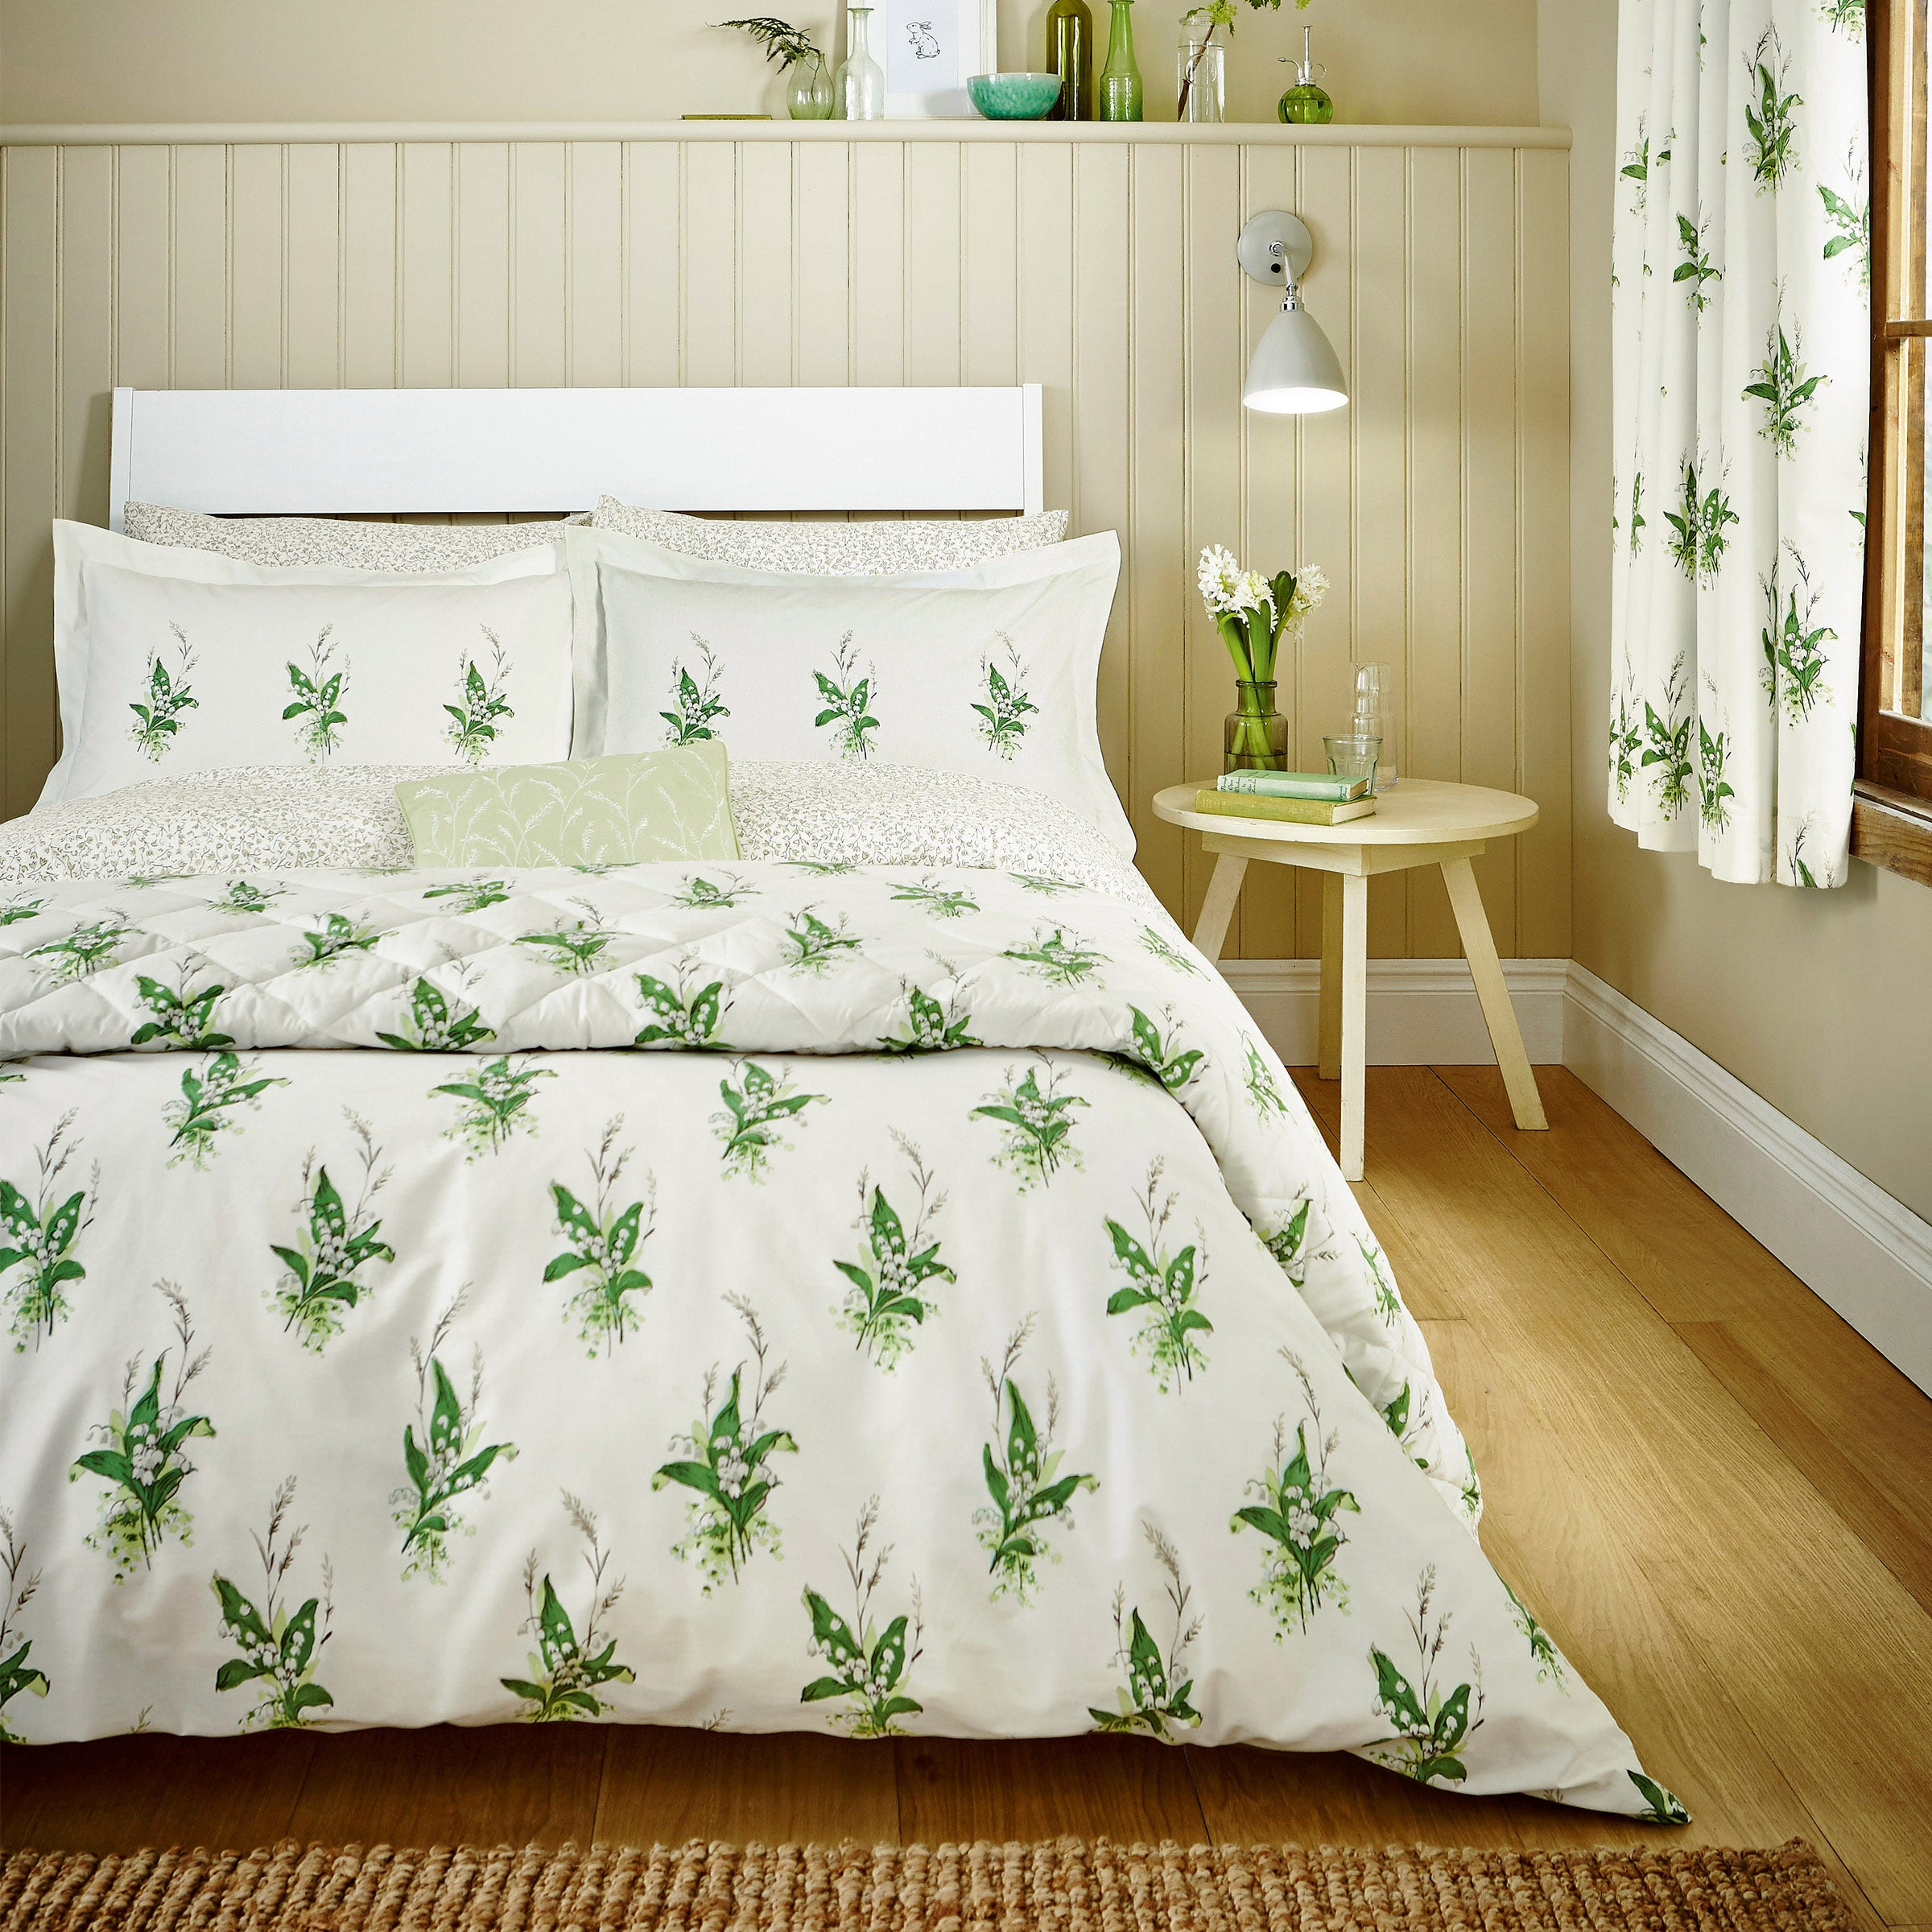 Sanderson Bedding Muguet Single Duvet Cover EmeraldIvory